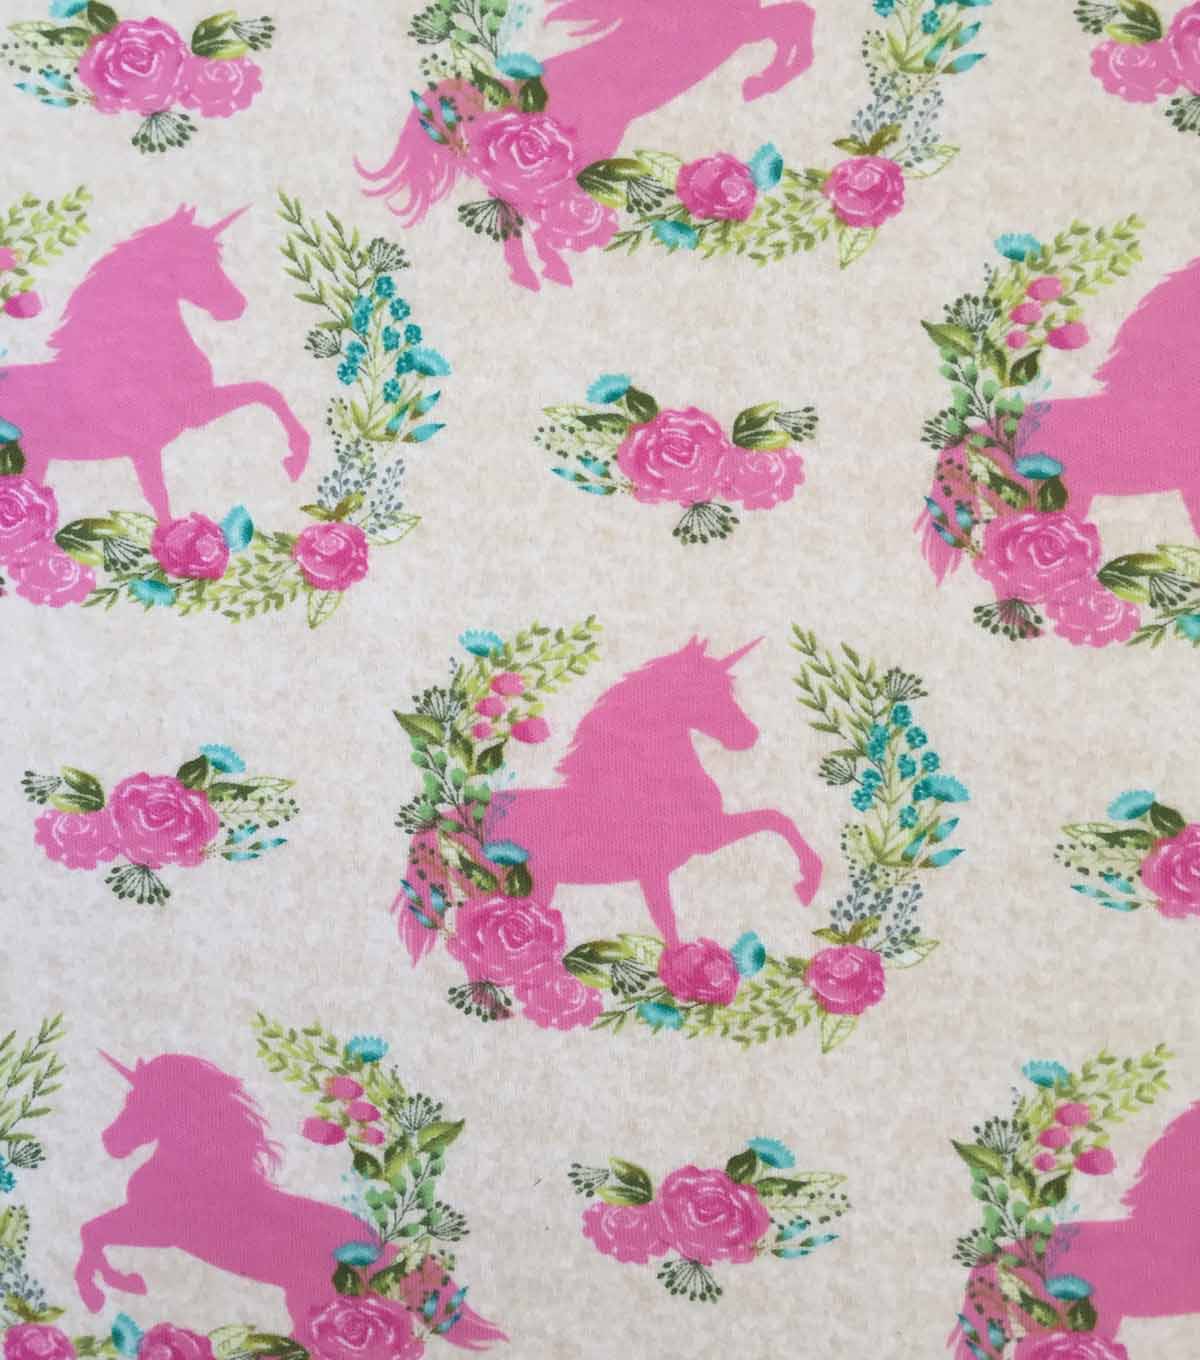 Doodles Cotton Interlock Knit Fabric-Oat Unicorns in Garland